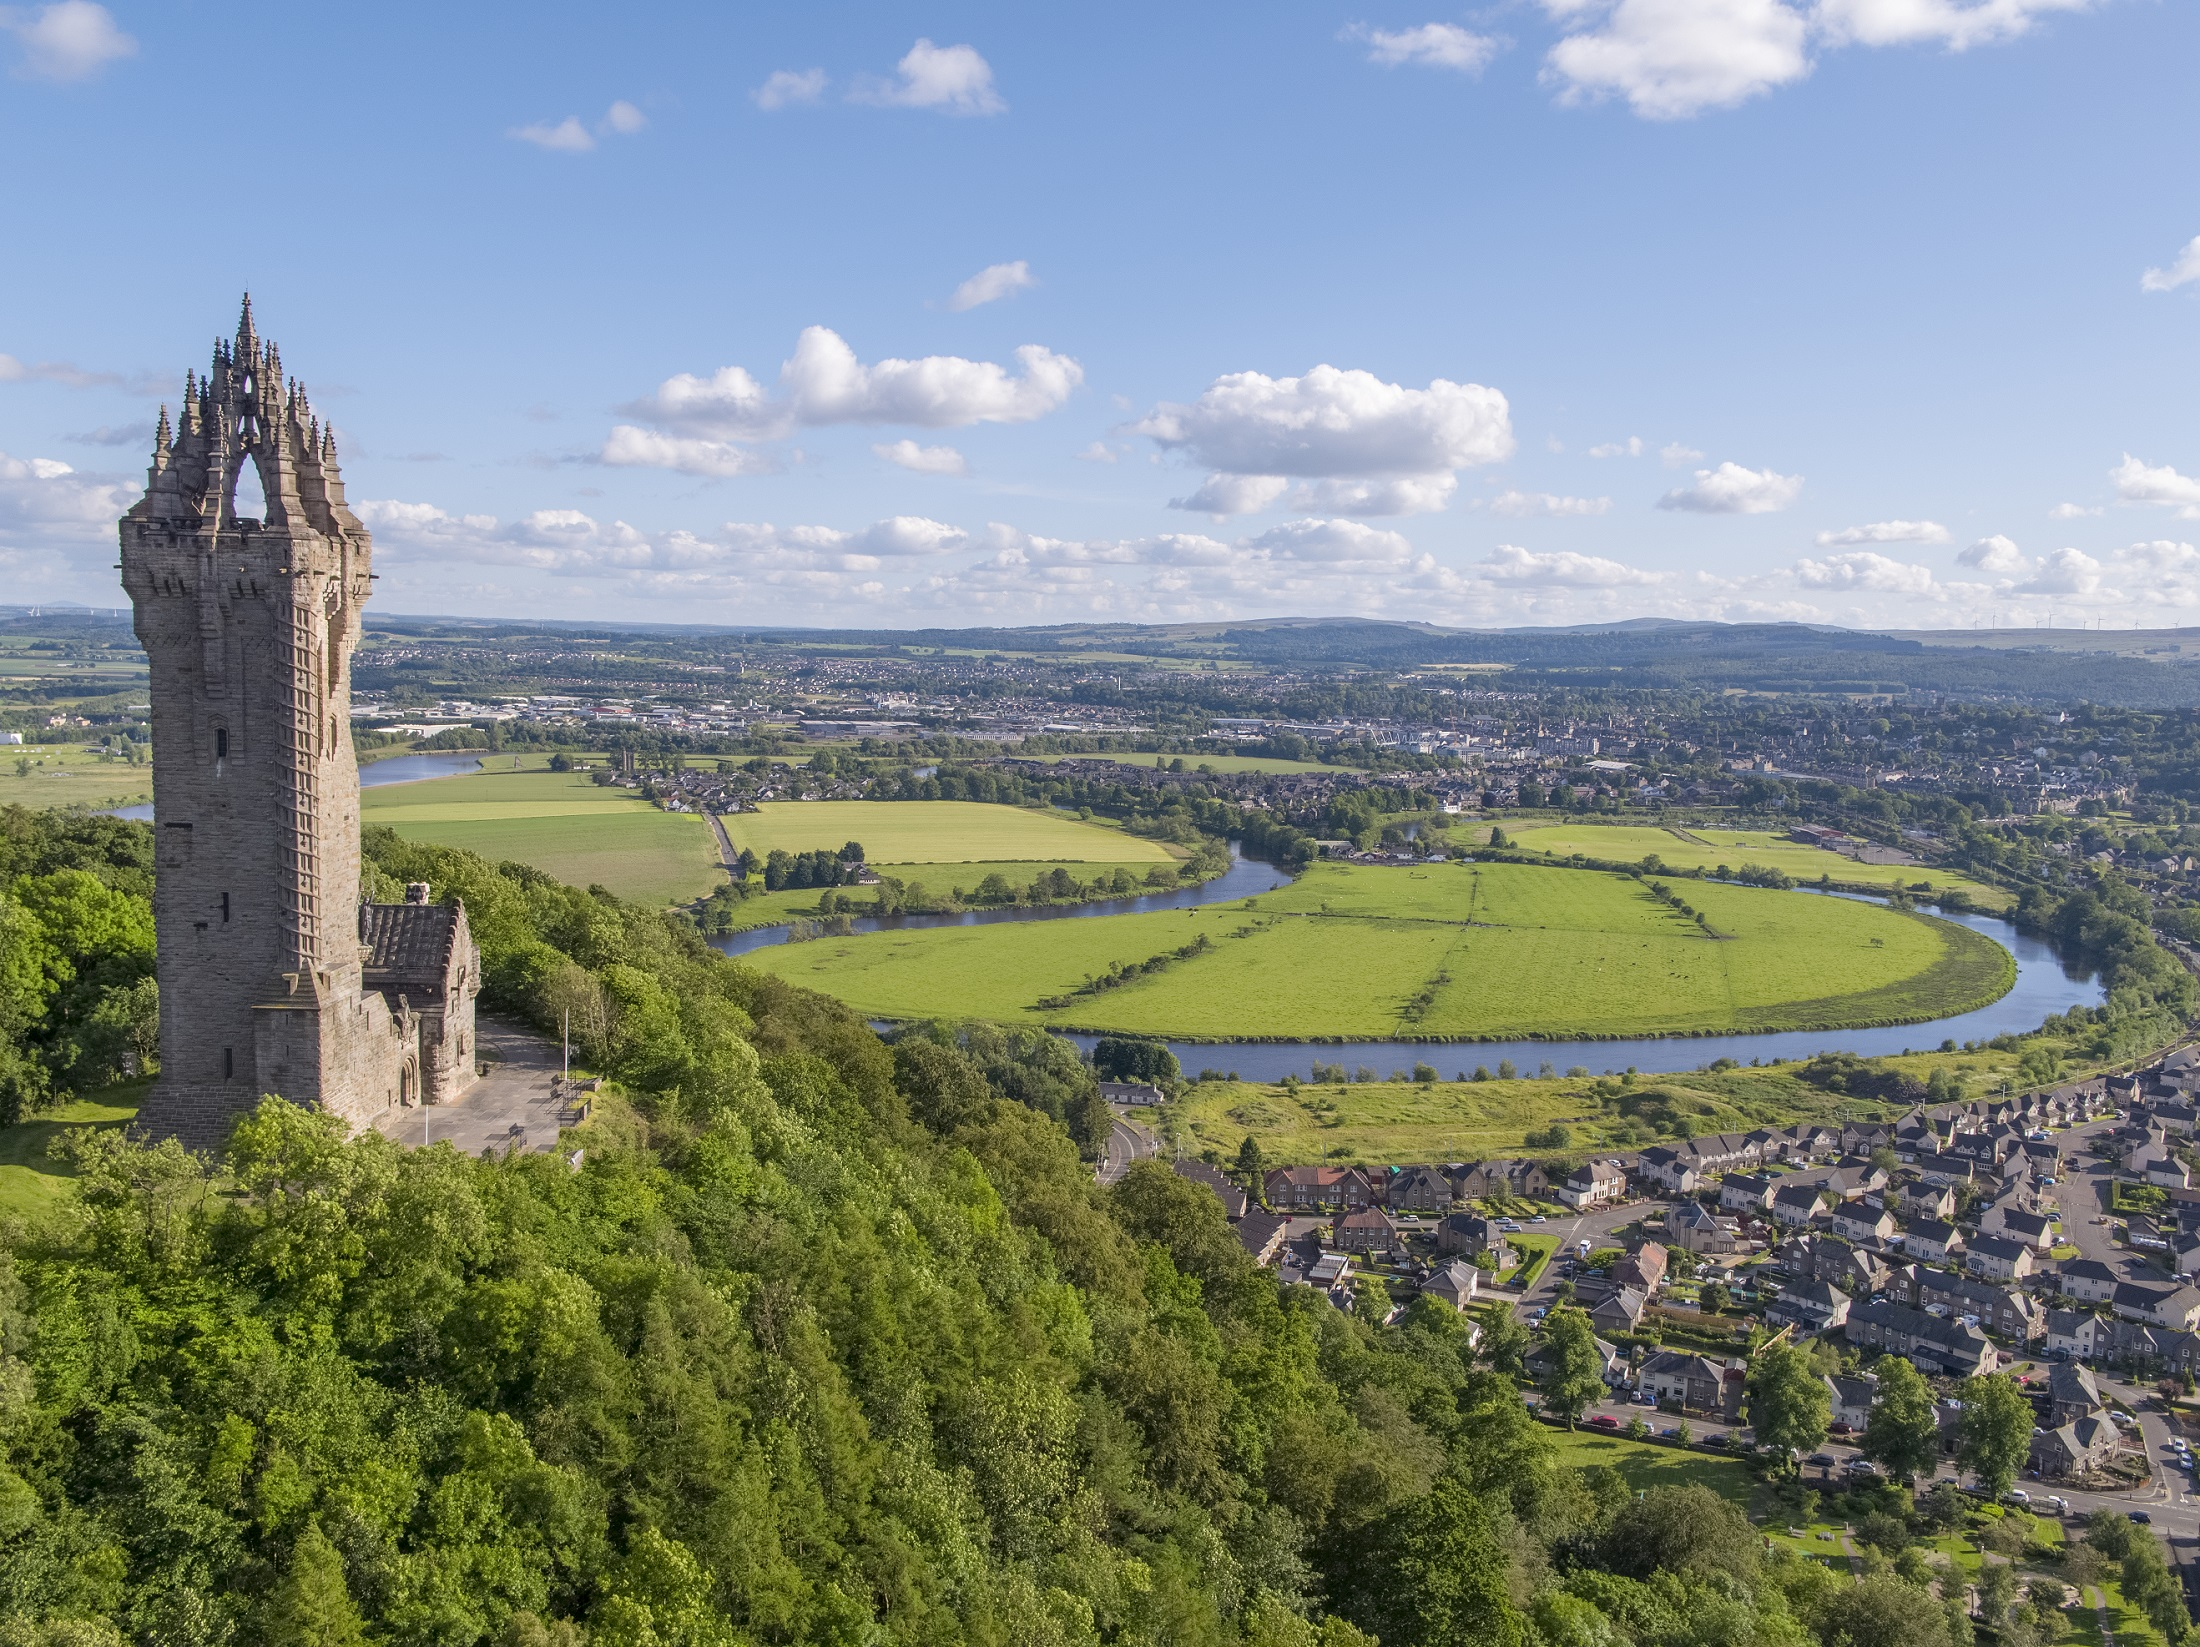 the Wallace Monument - soon to be in full Council ownership and operation - stands proudly over Stirling